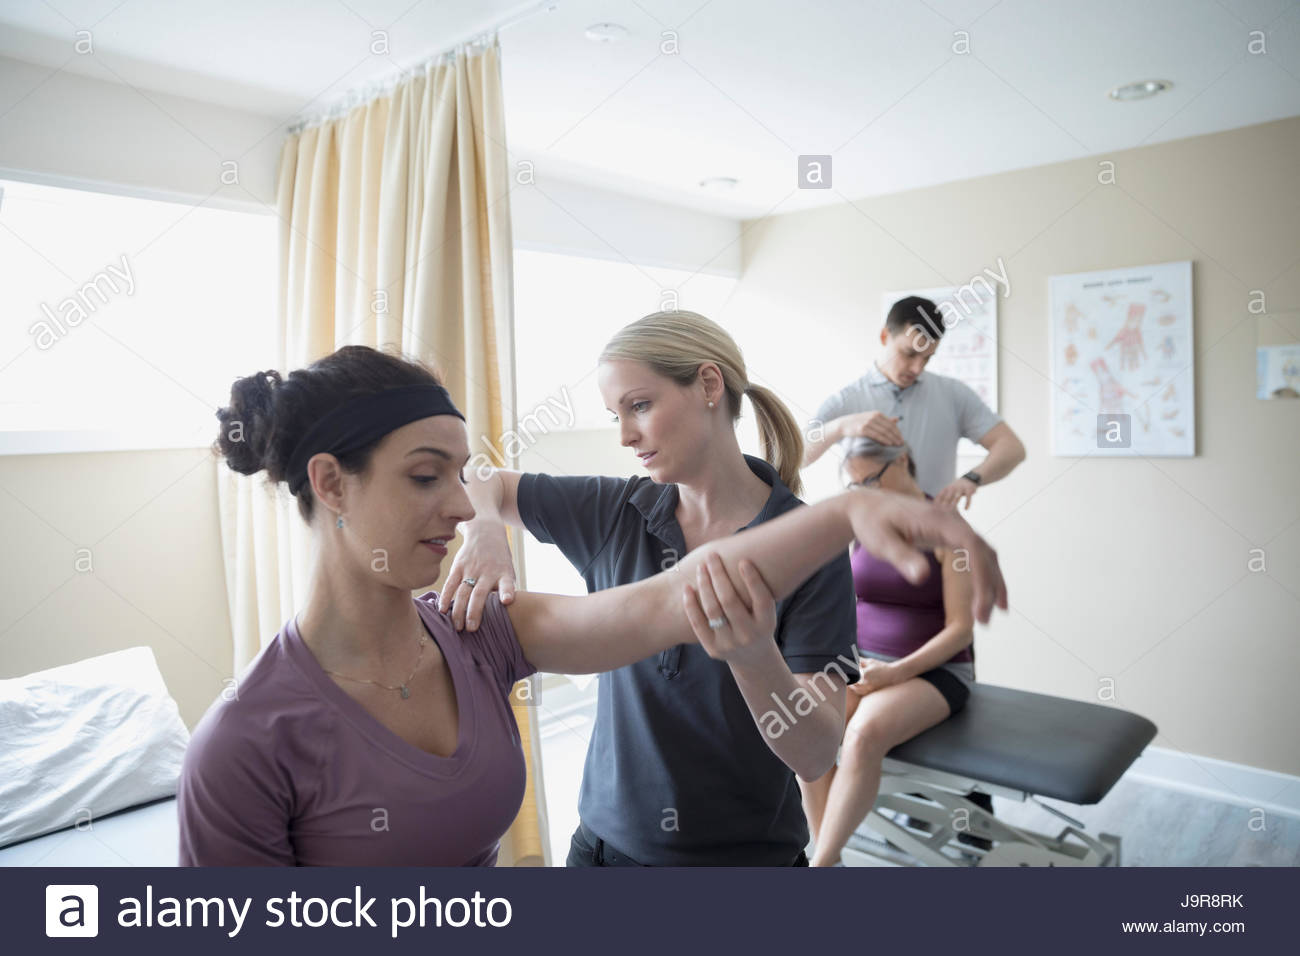 Physiotherapists examining clients in clinic - Stock Image